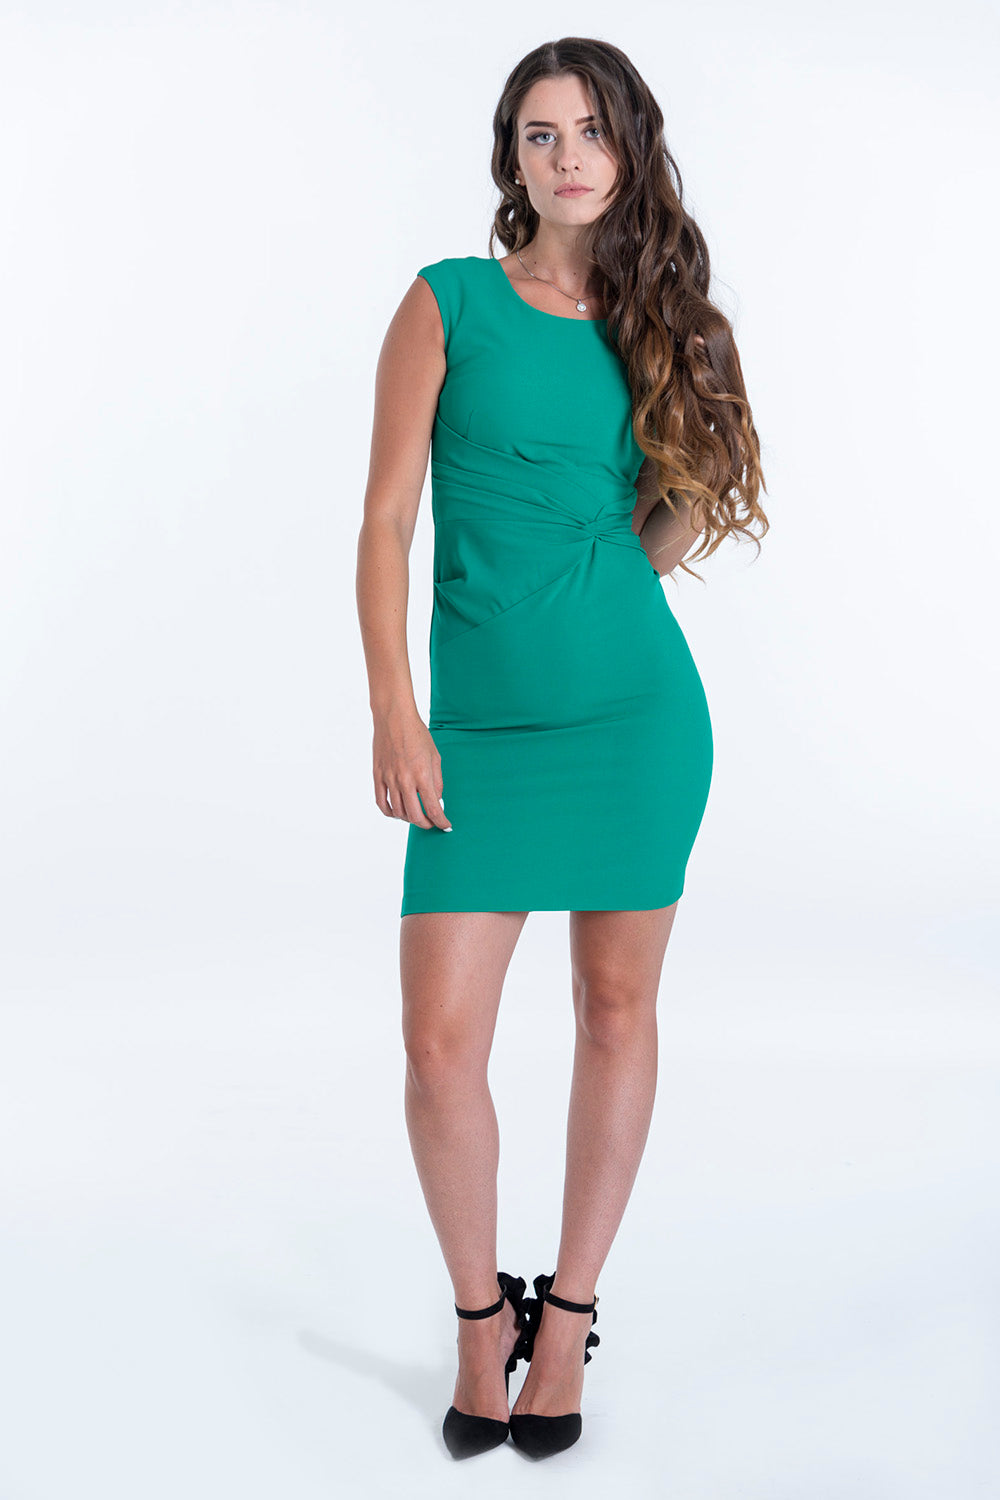 Despina Vandi for Chip&Chip dress with ruched waist